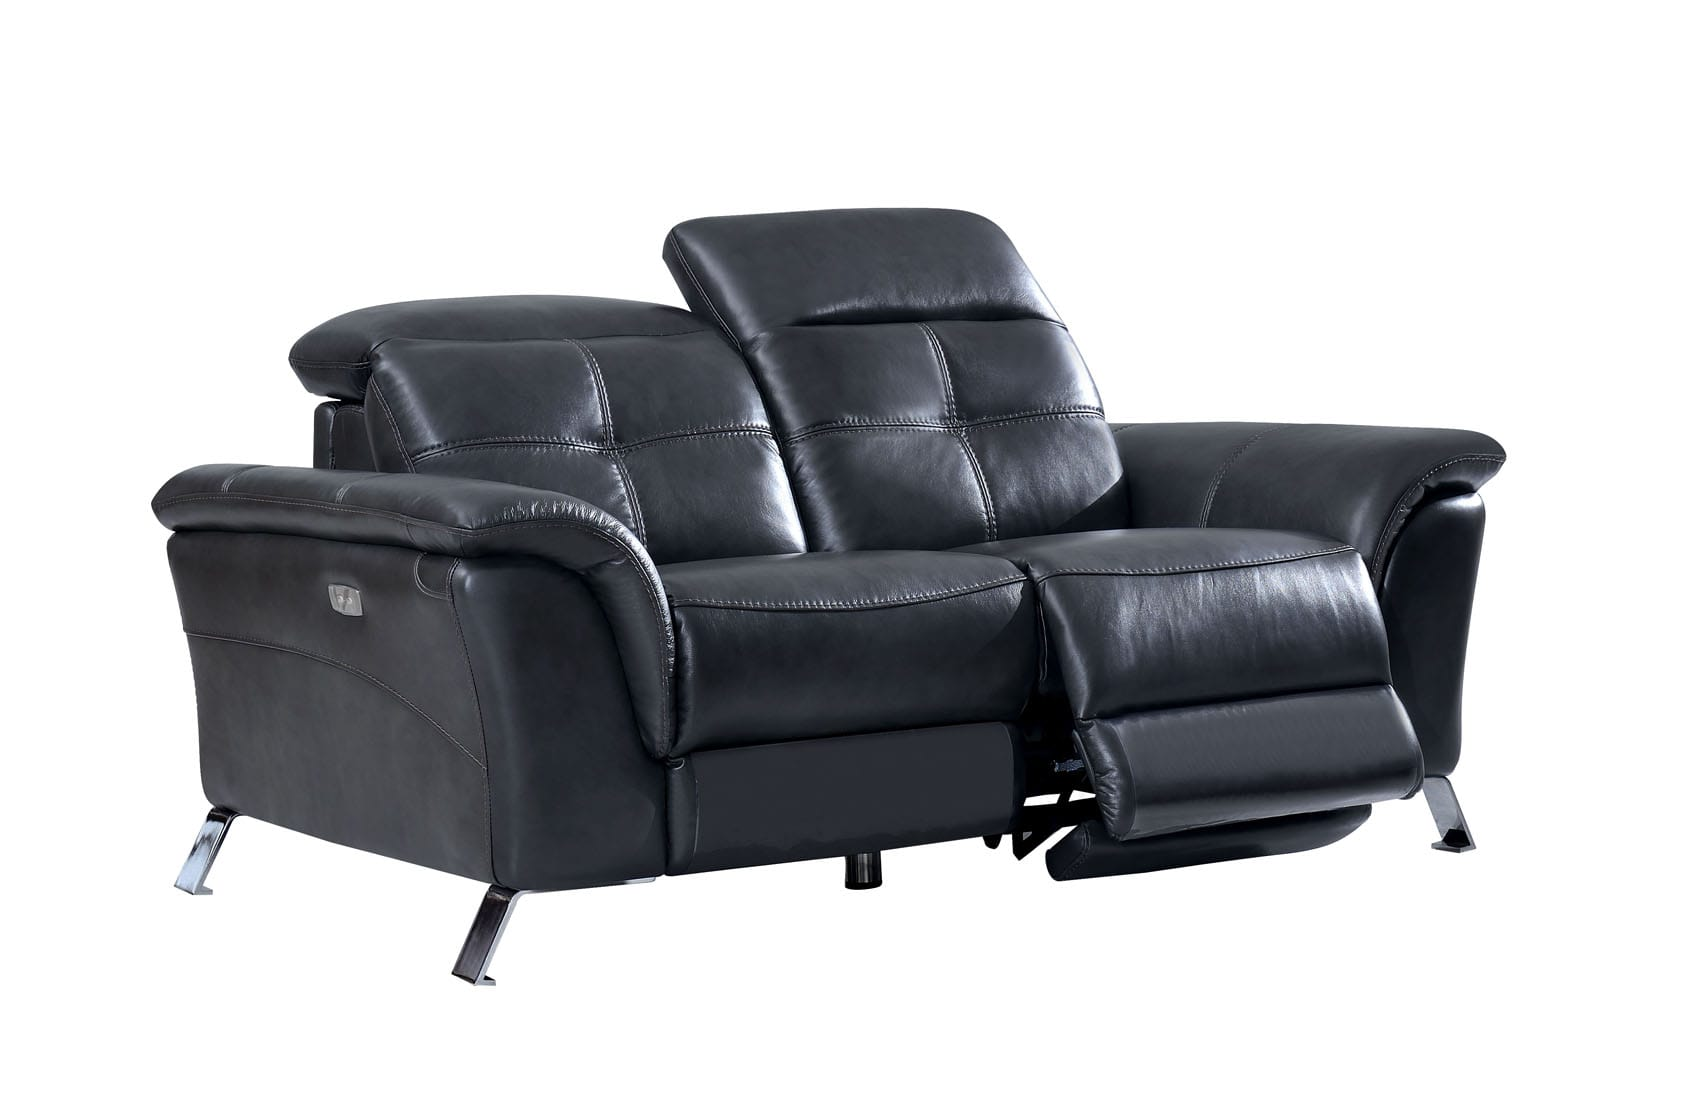 Pleasing 2619 Gray Leather Loveseat W 2 Electric Recliners By Esf Bralicious Painted Fabric Chair Ideas Braliciousco